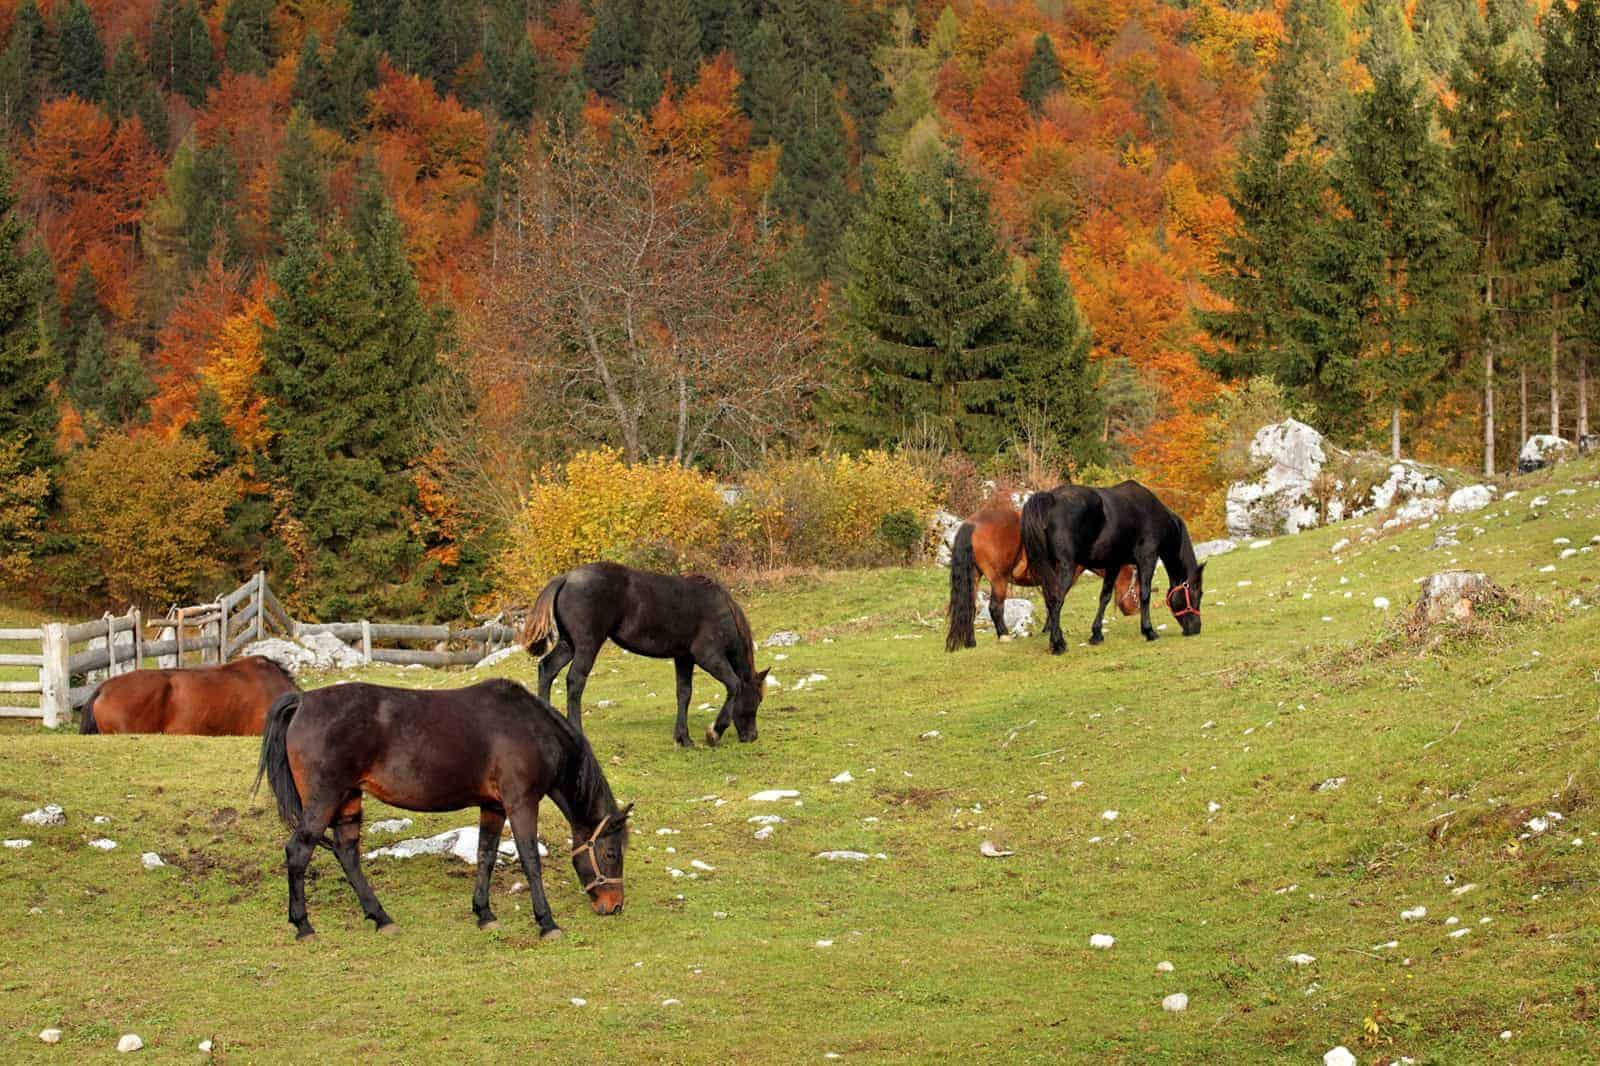 What Is a Maintenance Diet for Horses